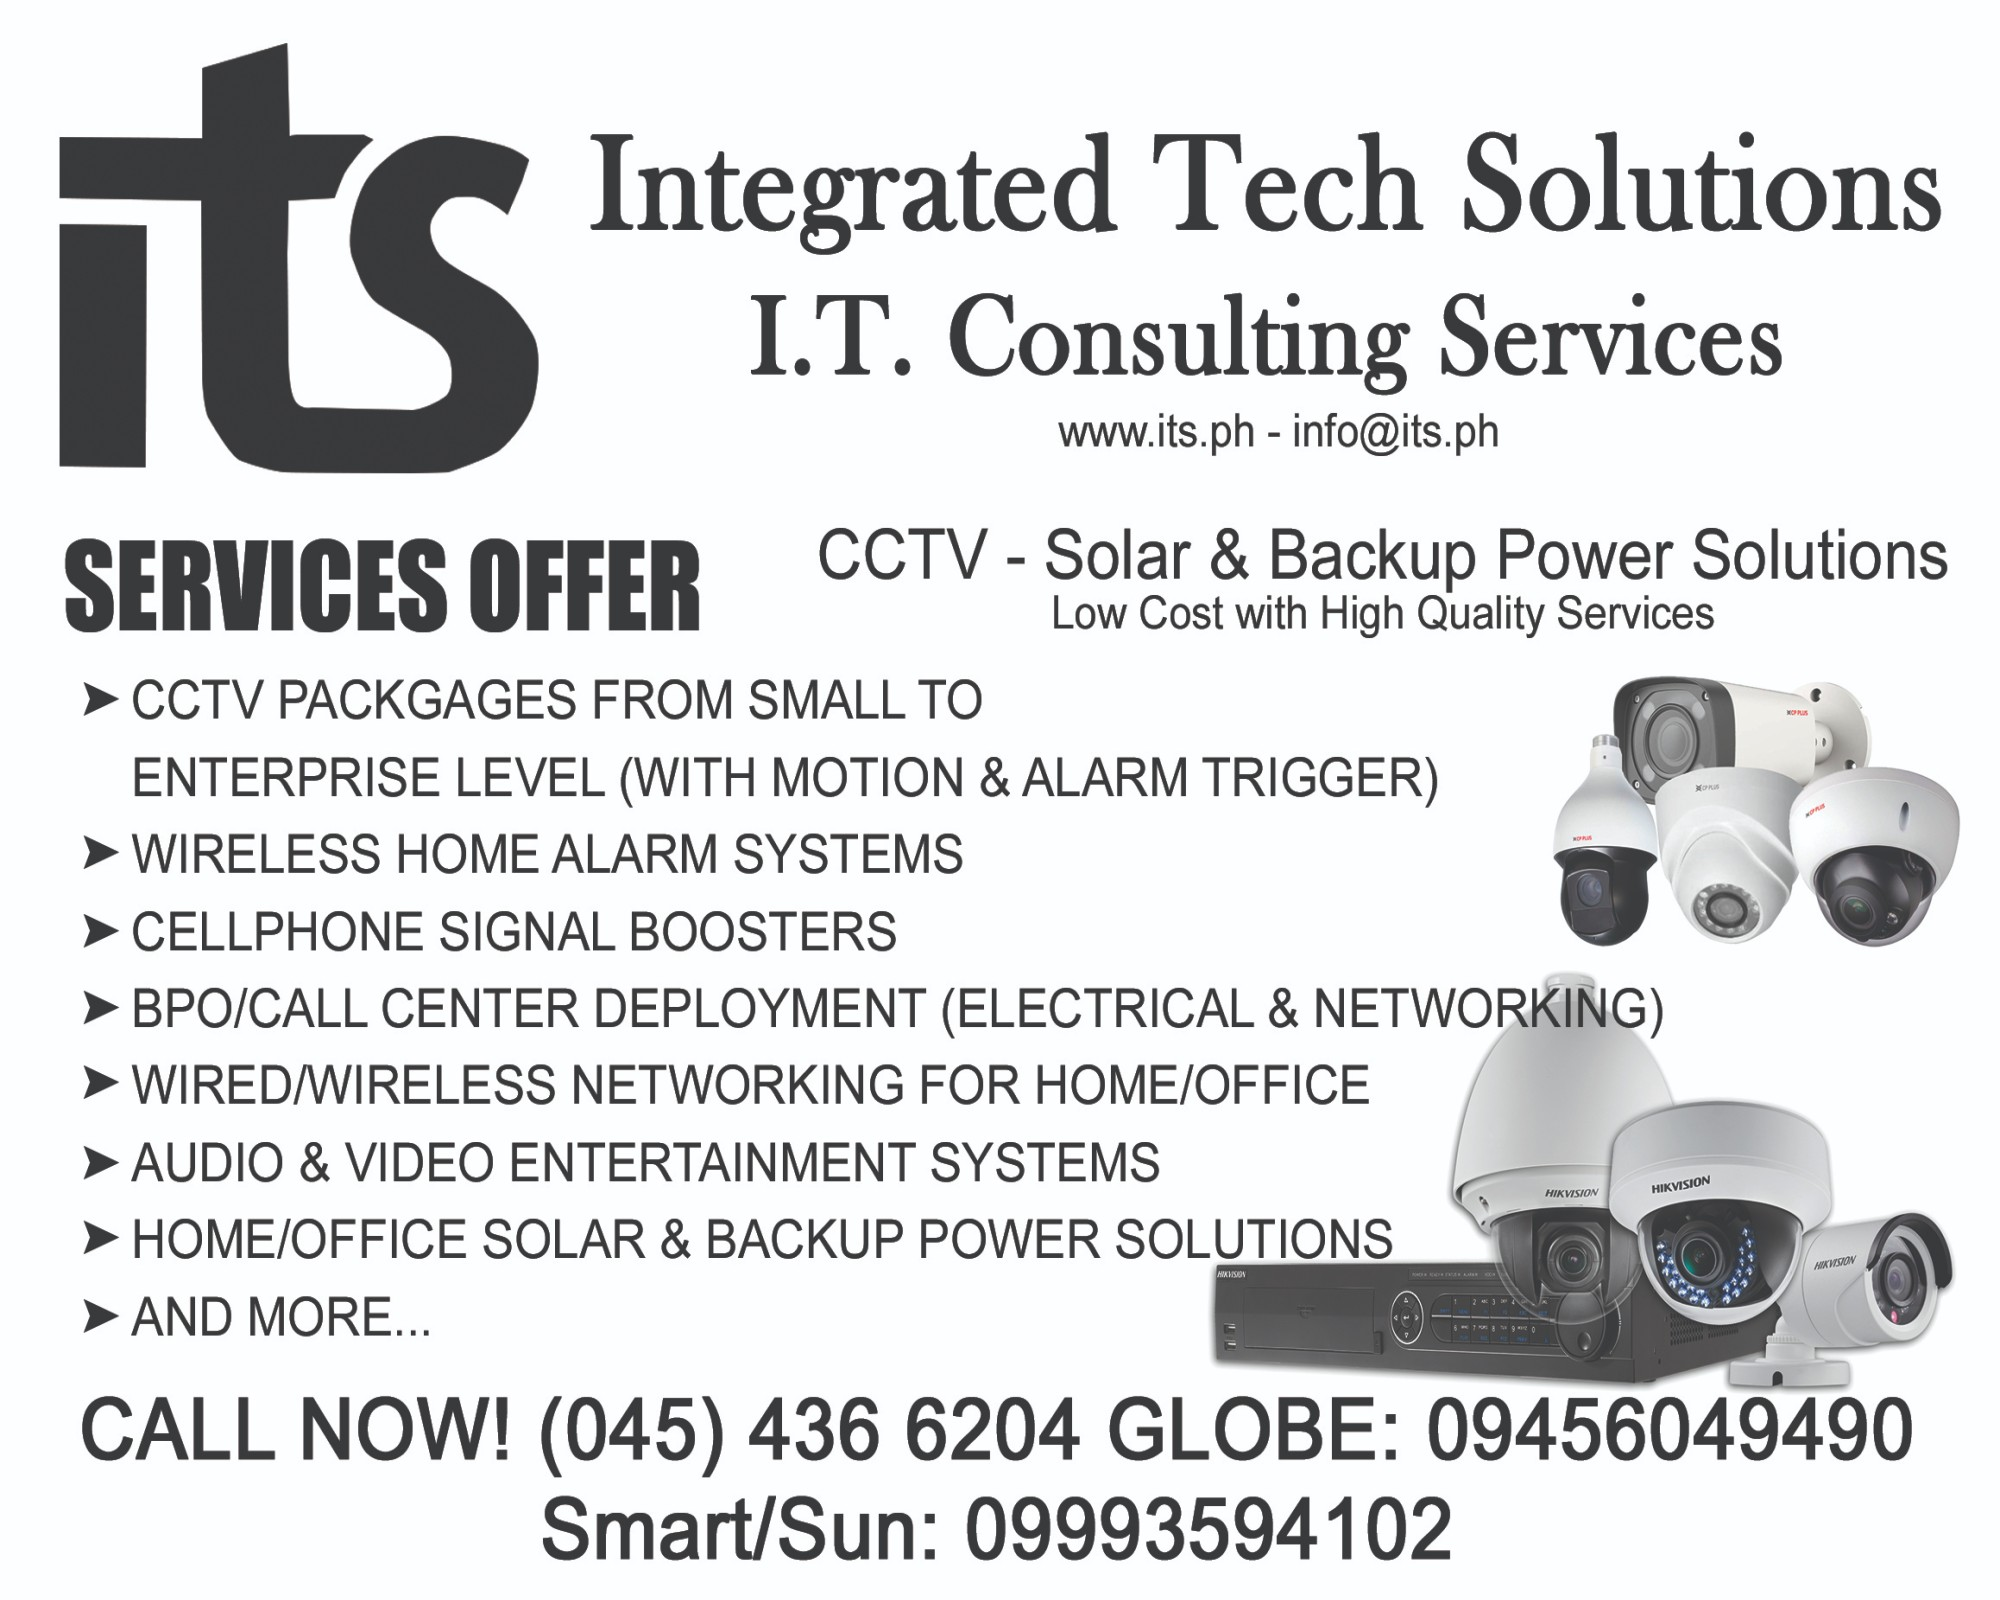 Intergrated Tech Solutions